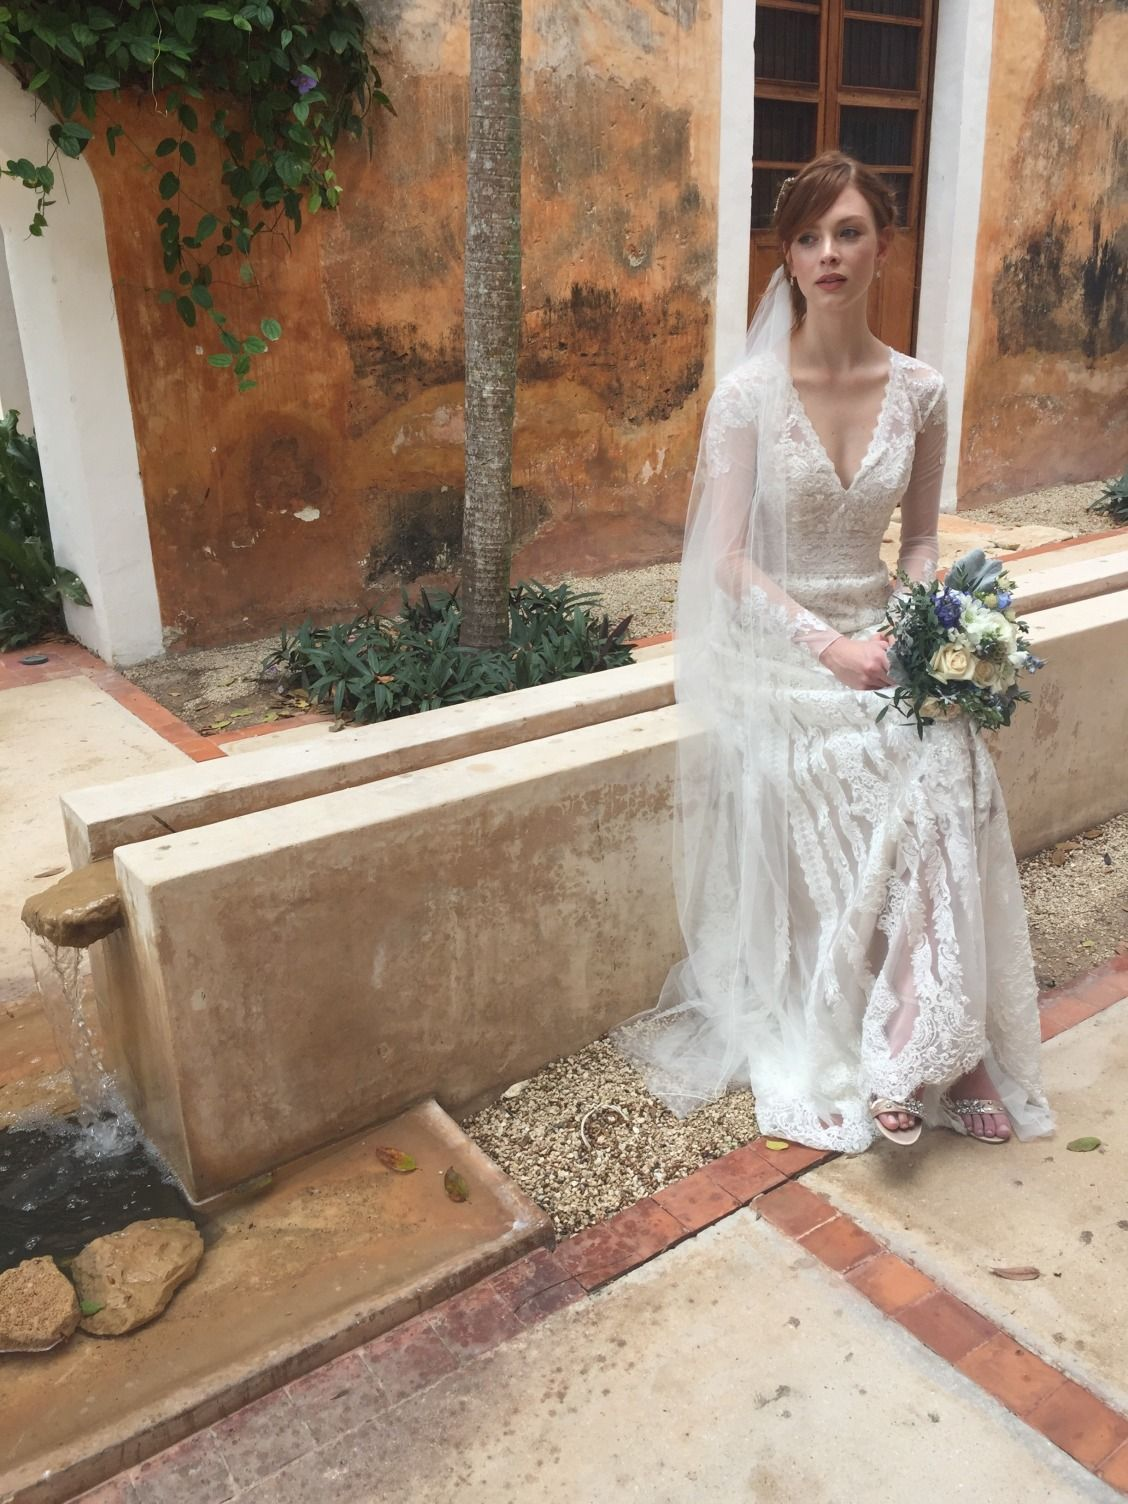 David bridal wedding dress  On Location Fall  Melissa Sweet Photo Shoot  Davidus Bridal